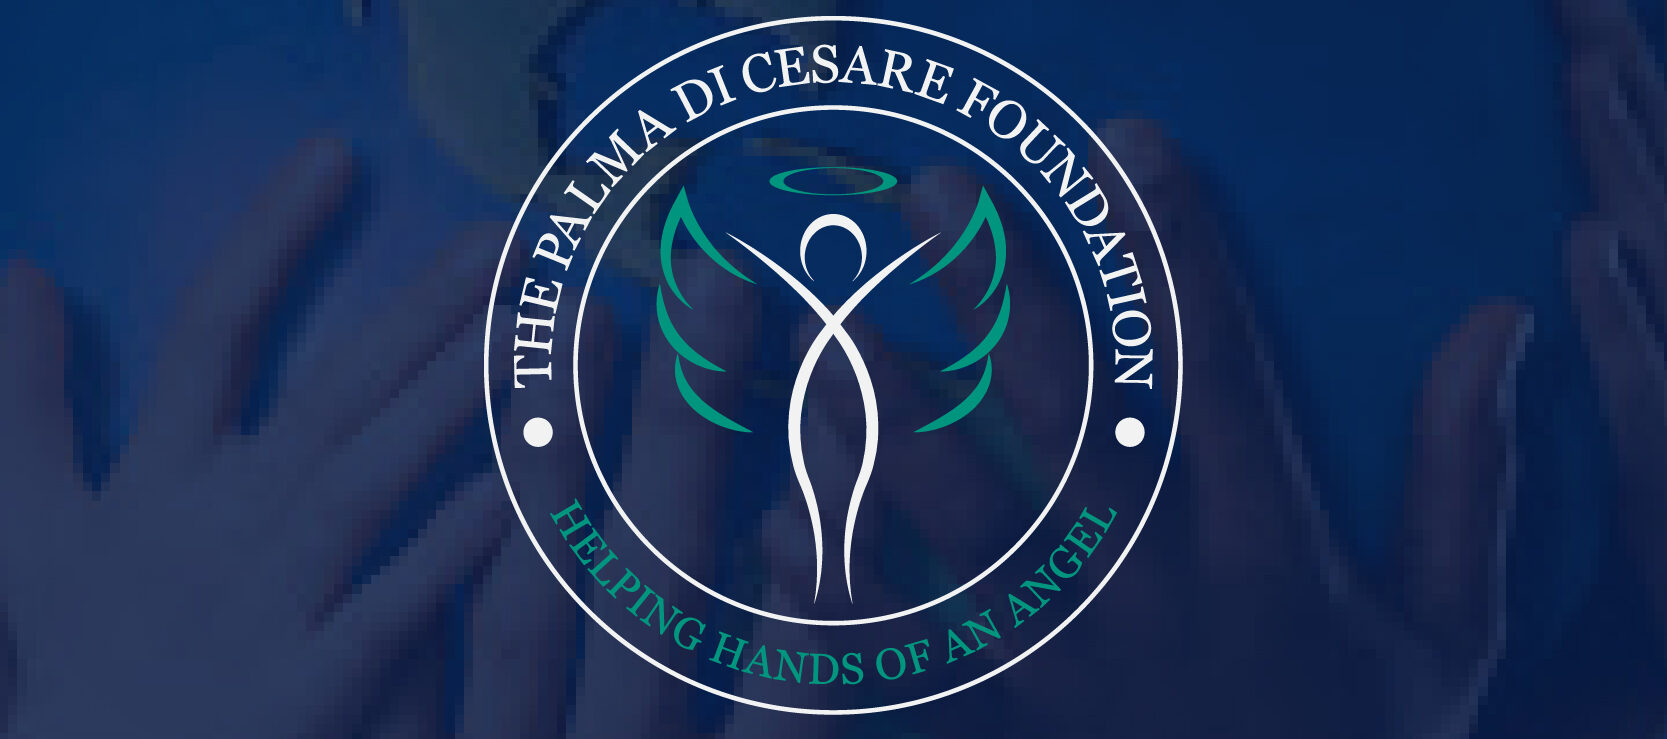 Helping Hands Of An Angel: The Palma Di Cesare Foundation